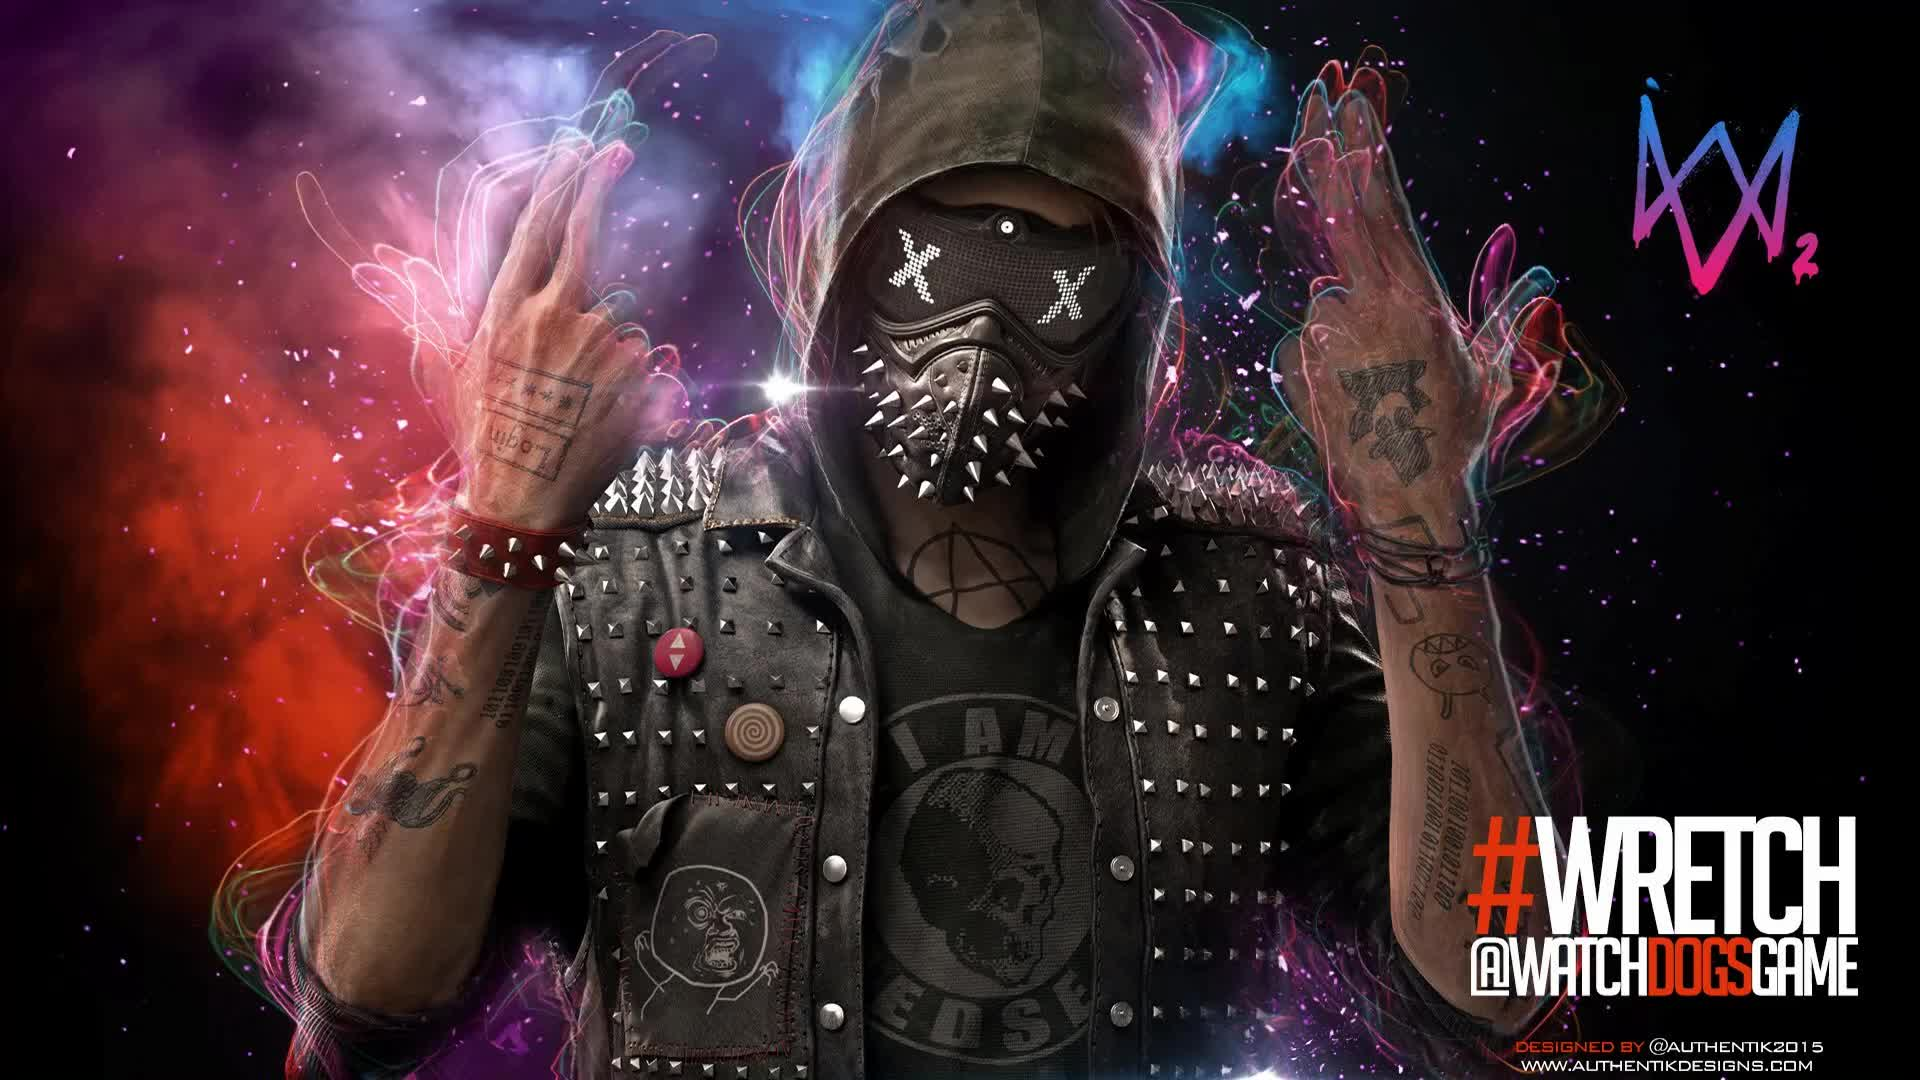 Watch Dogs 2 Live Wallpaper Posted By Sarah Anderson